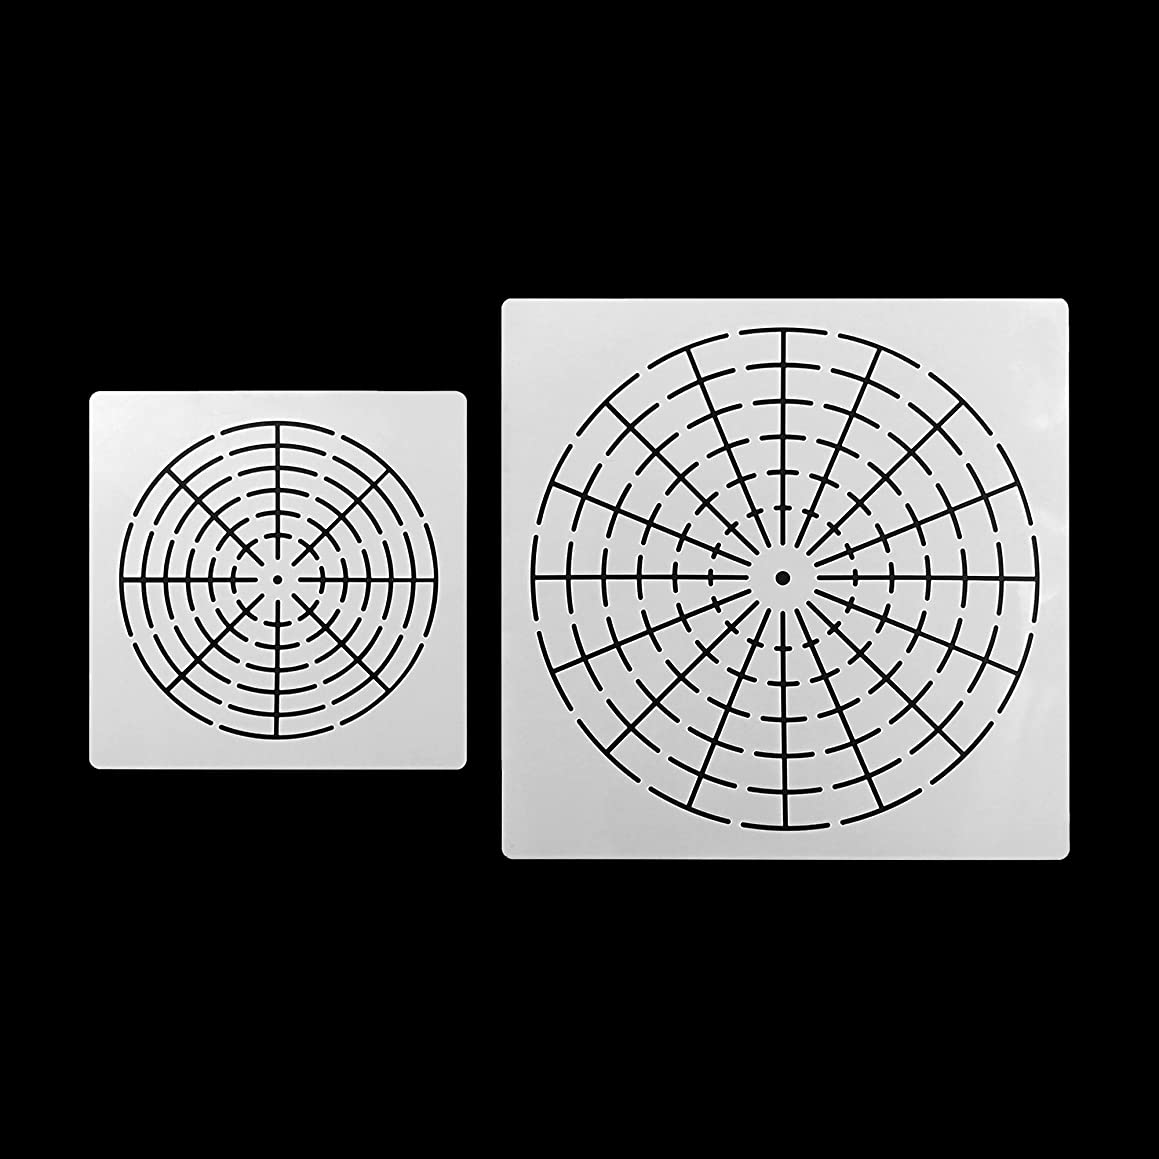 2 Pieces Mandala Stencils Template Hollow Auxiliary Line Drawing Template S8/L16 Segment